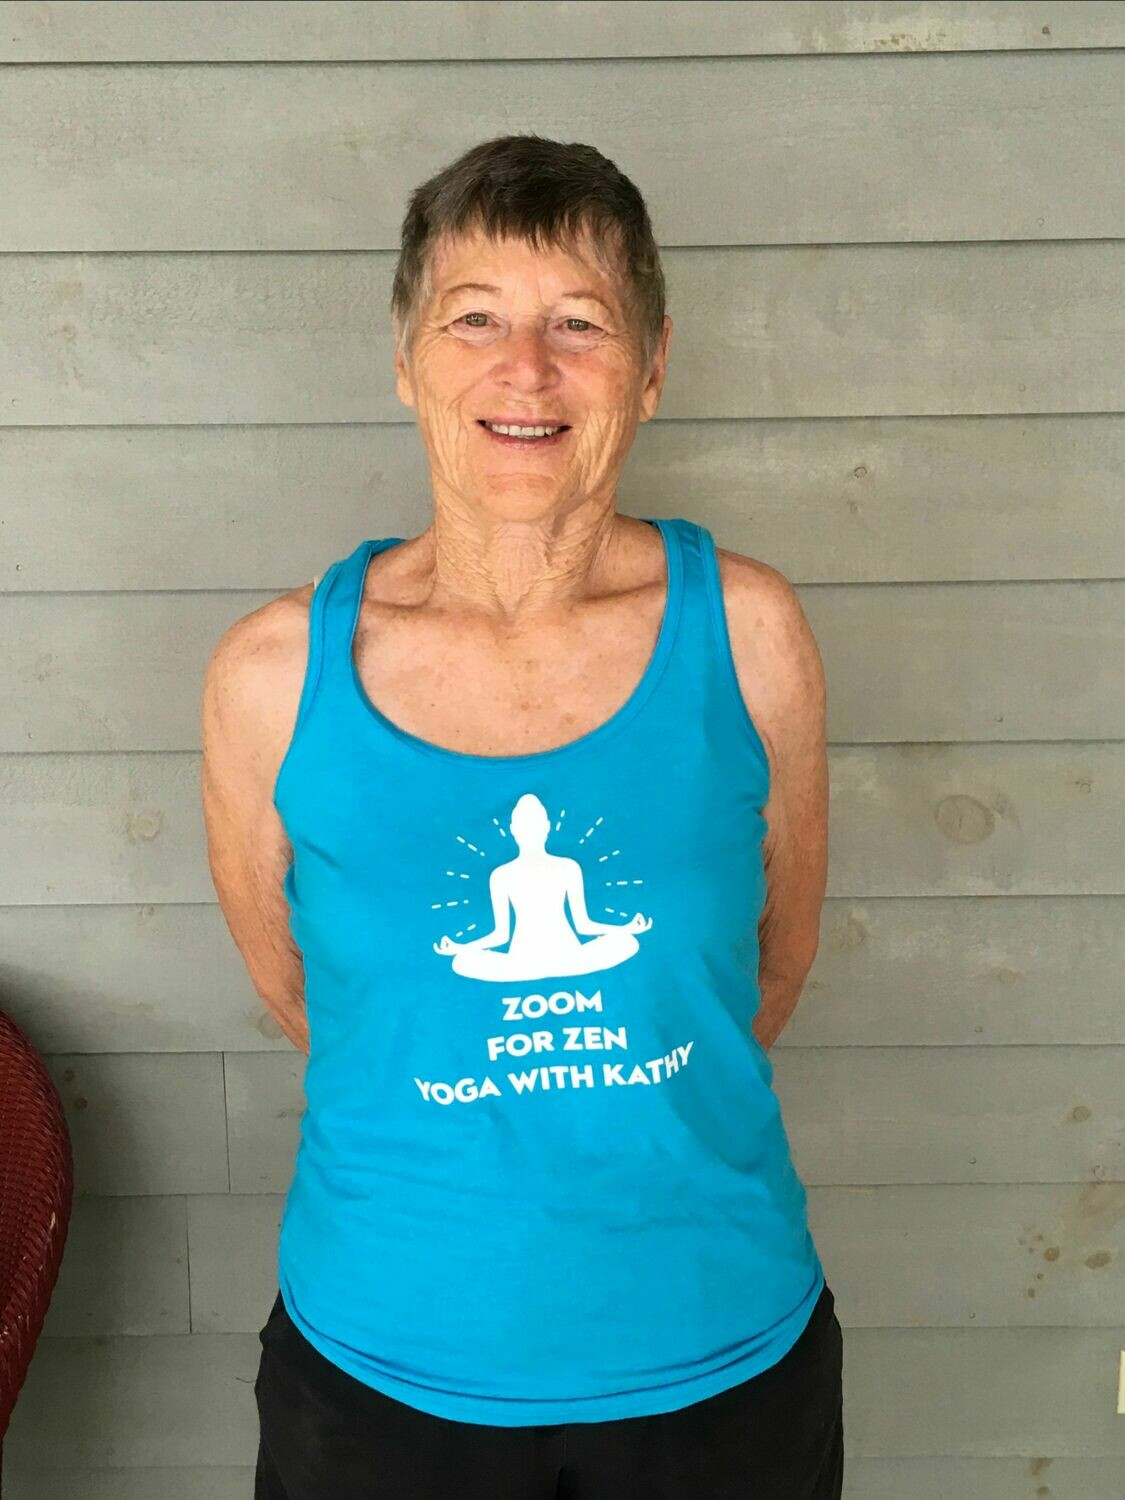 Zoom for Zen Yoga Tank